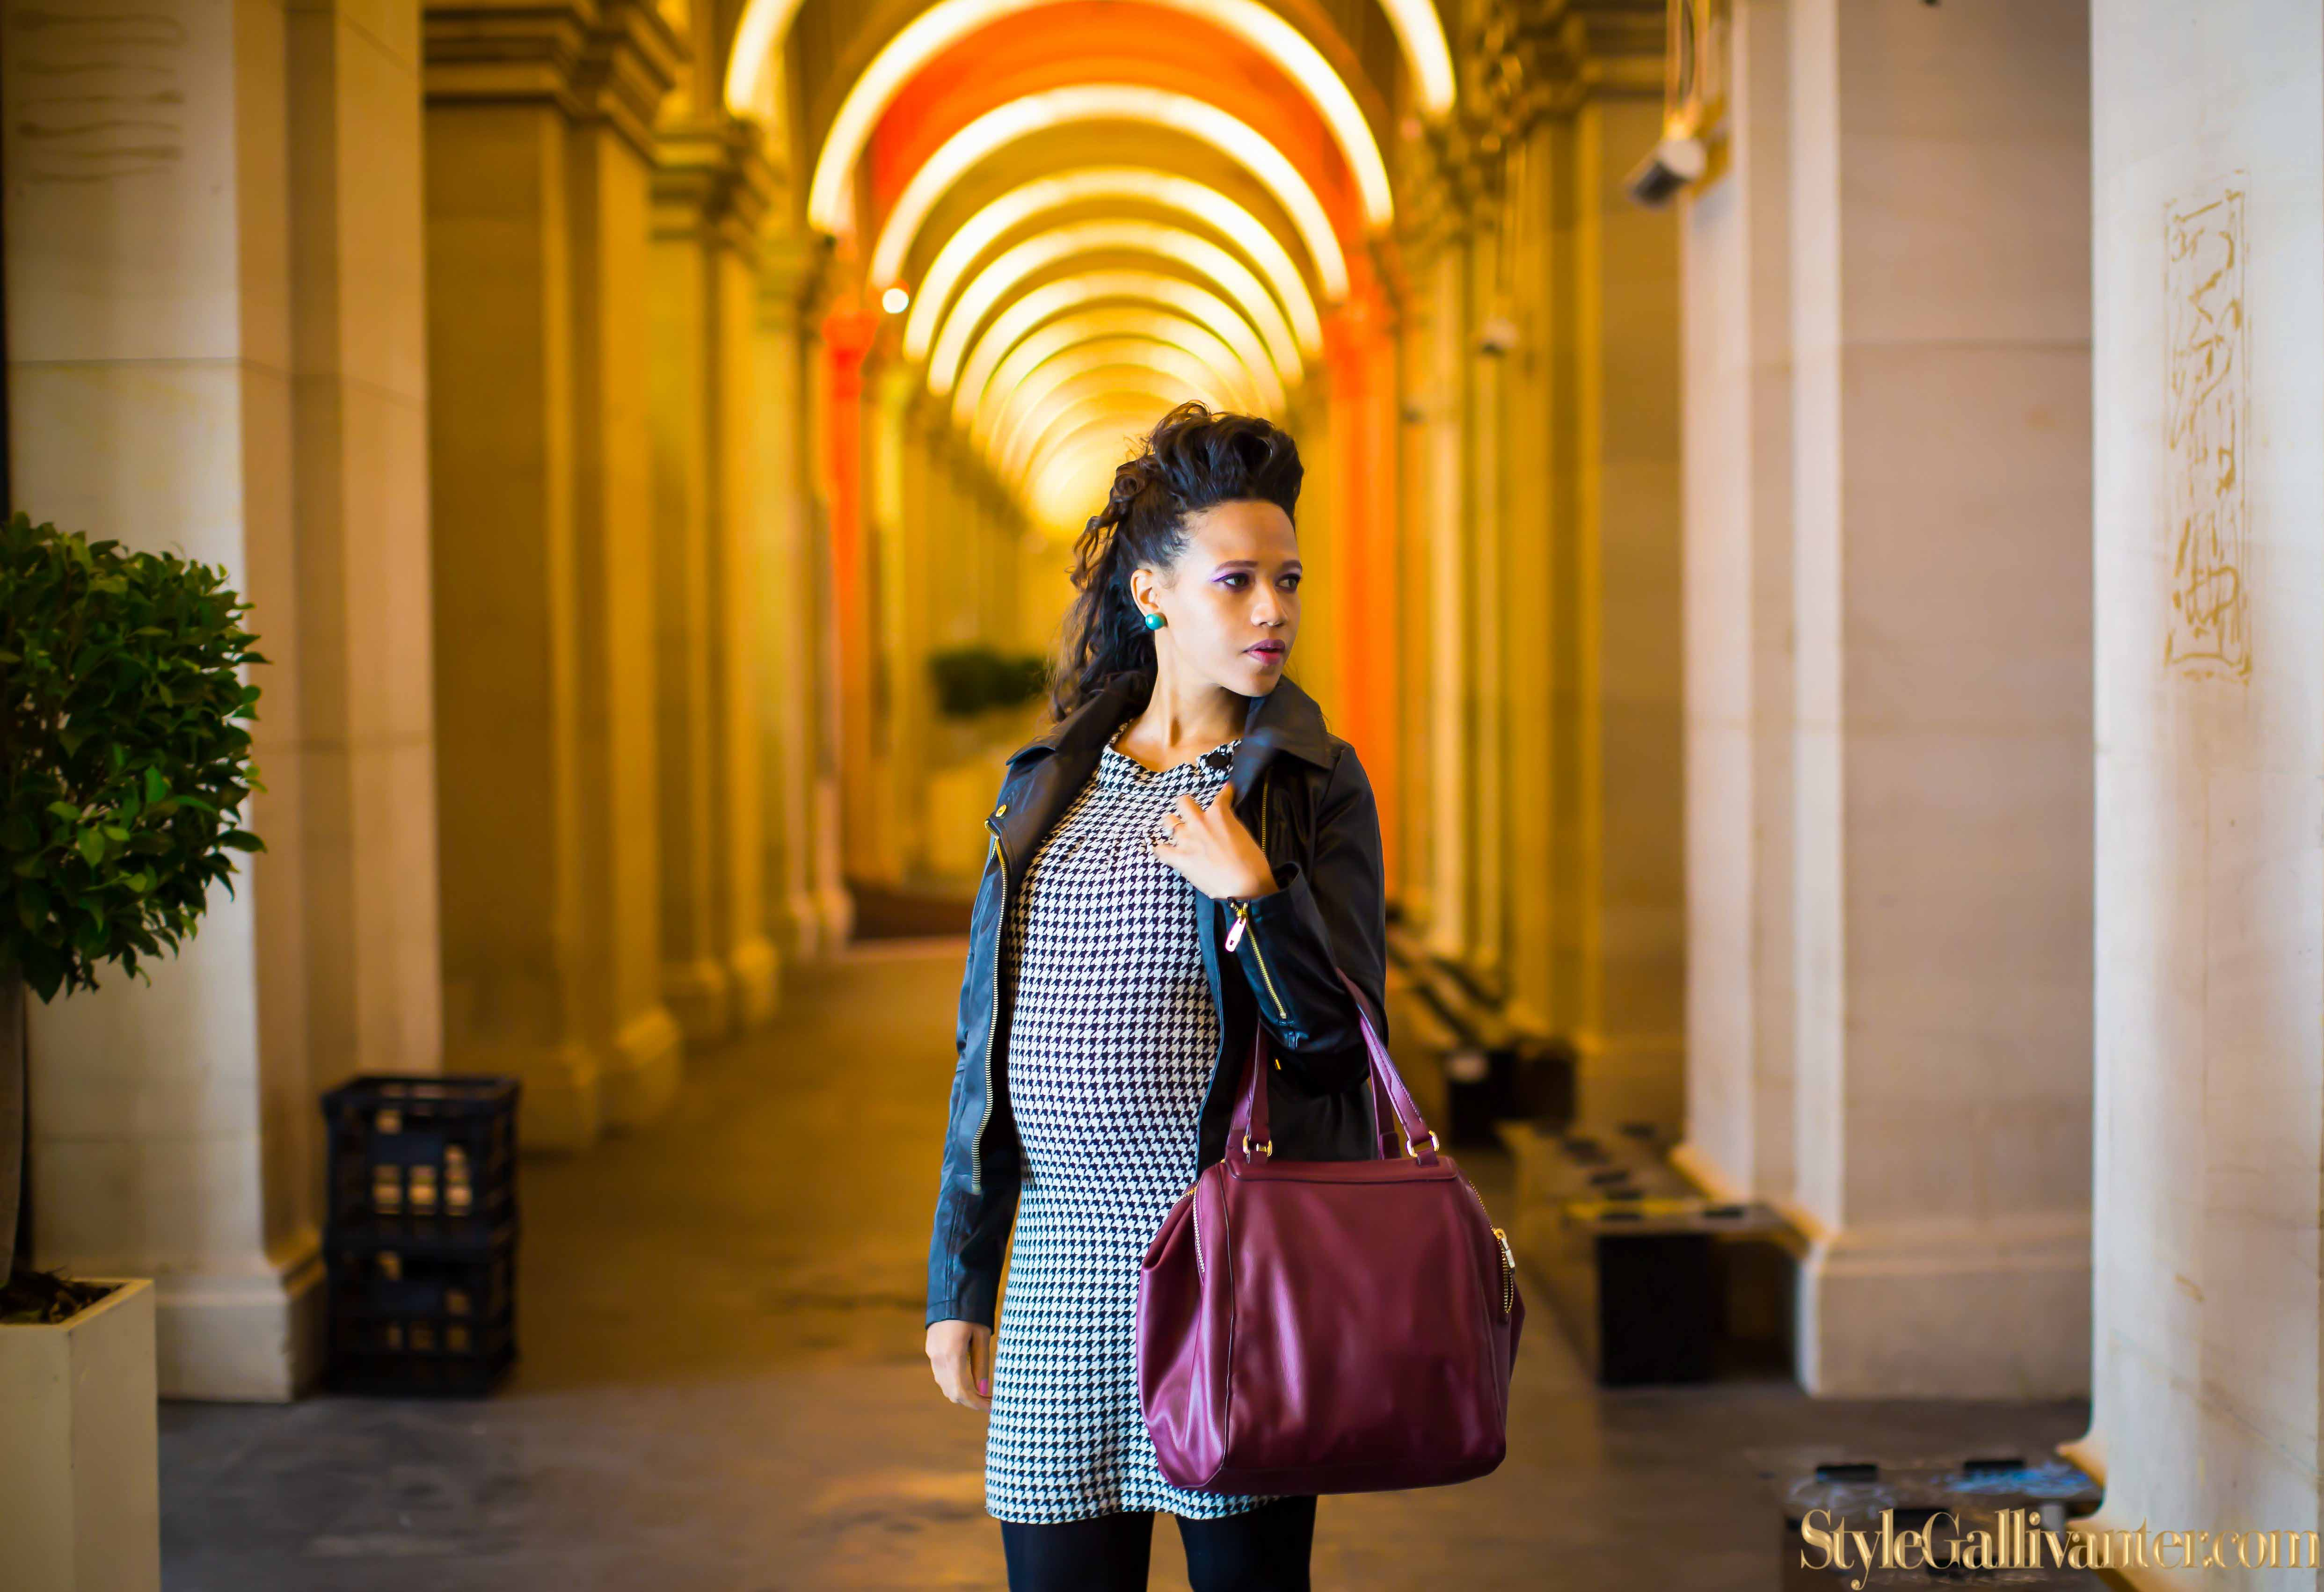 top-melbourne-fashion-blogs_pink-lipstick_model-who-blog, houndstooth-dress_what-is-houndstooth_stylish-pregnant-women-17